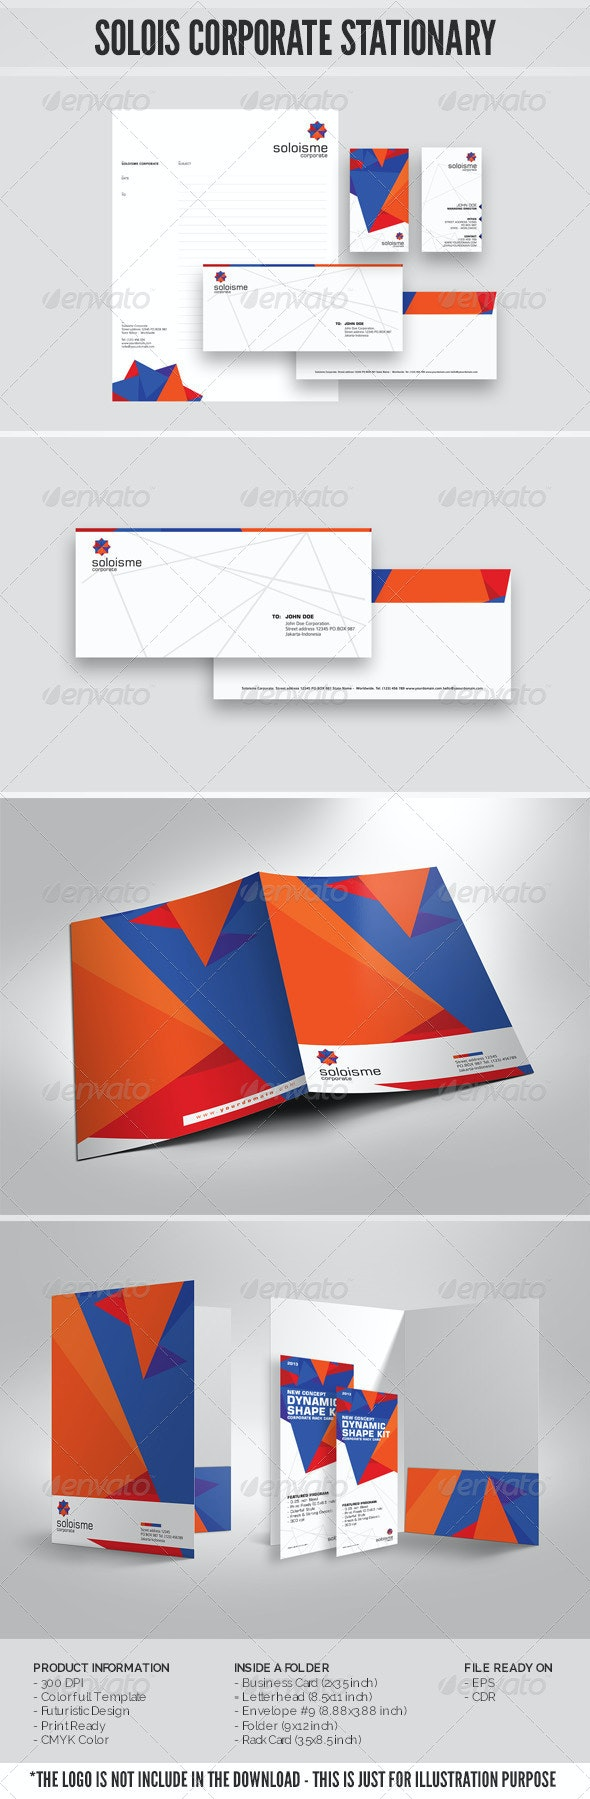 Solois Stationary Template - Stationery Print Templates